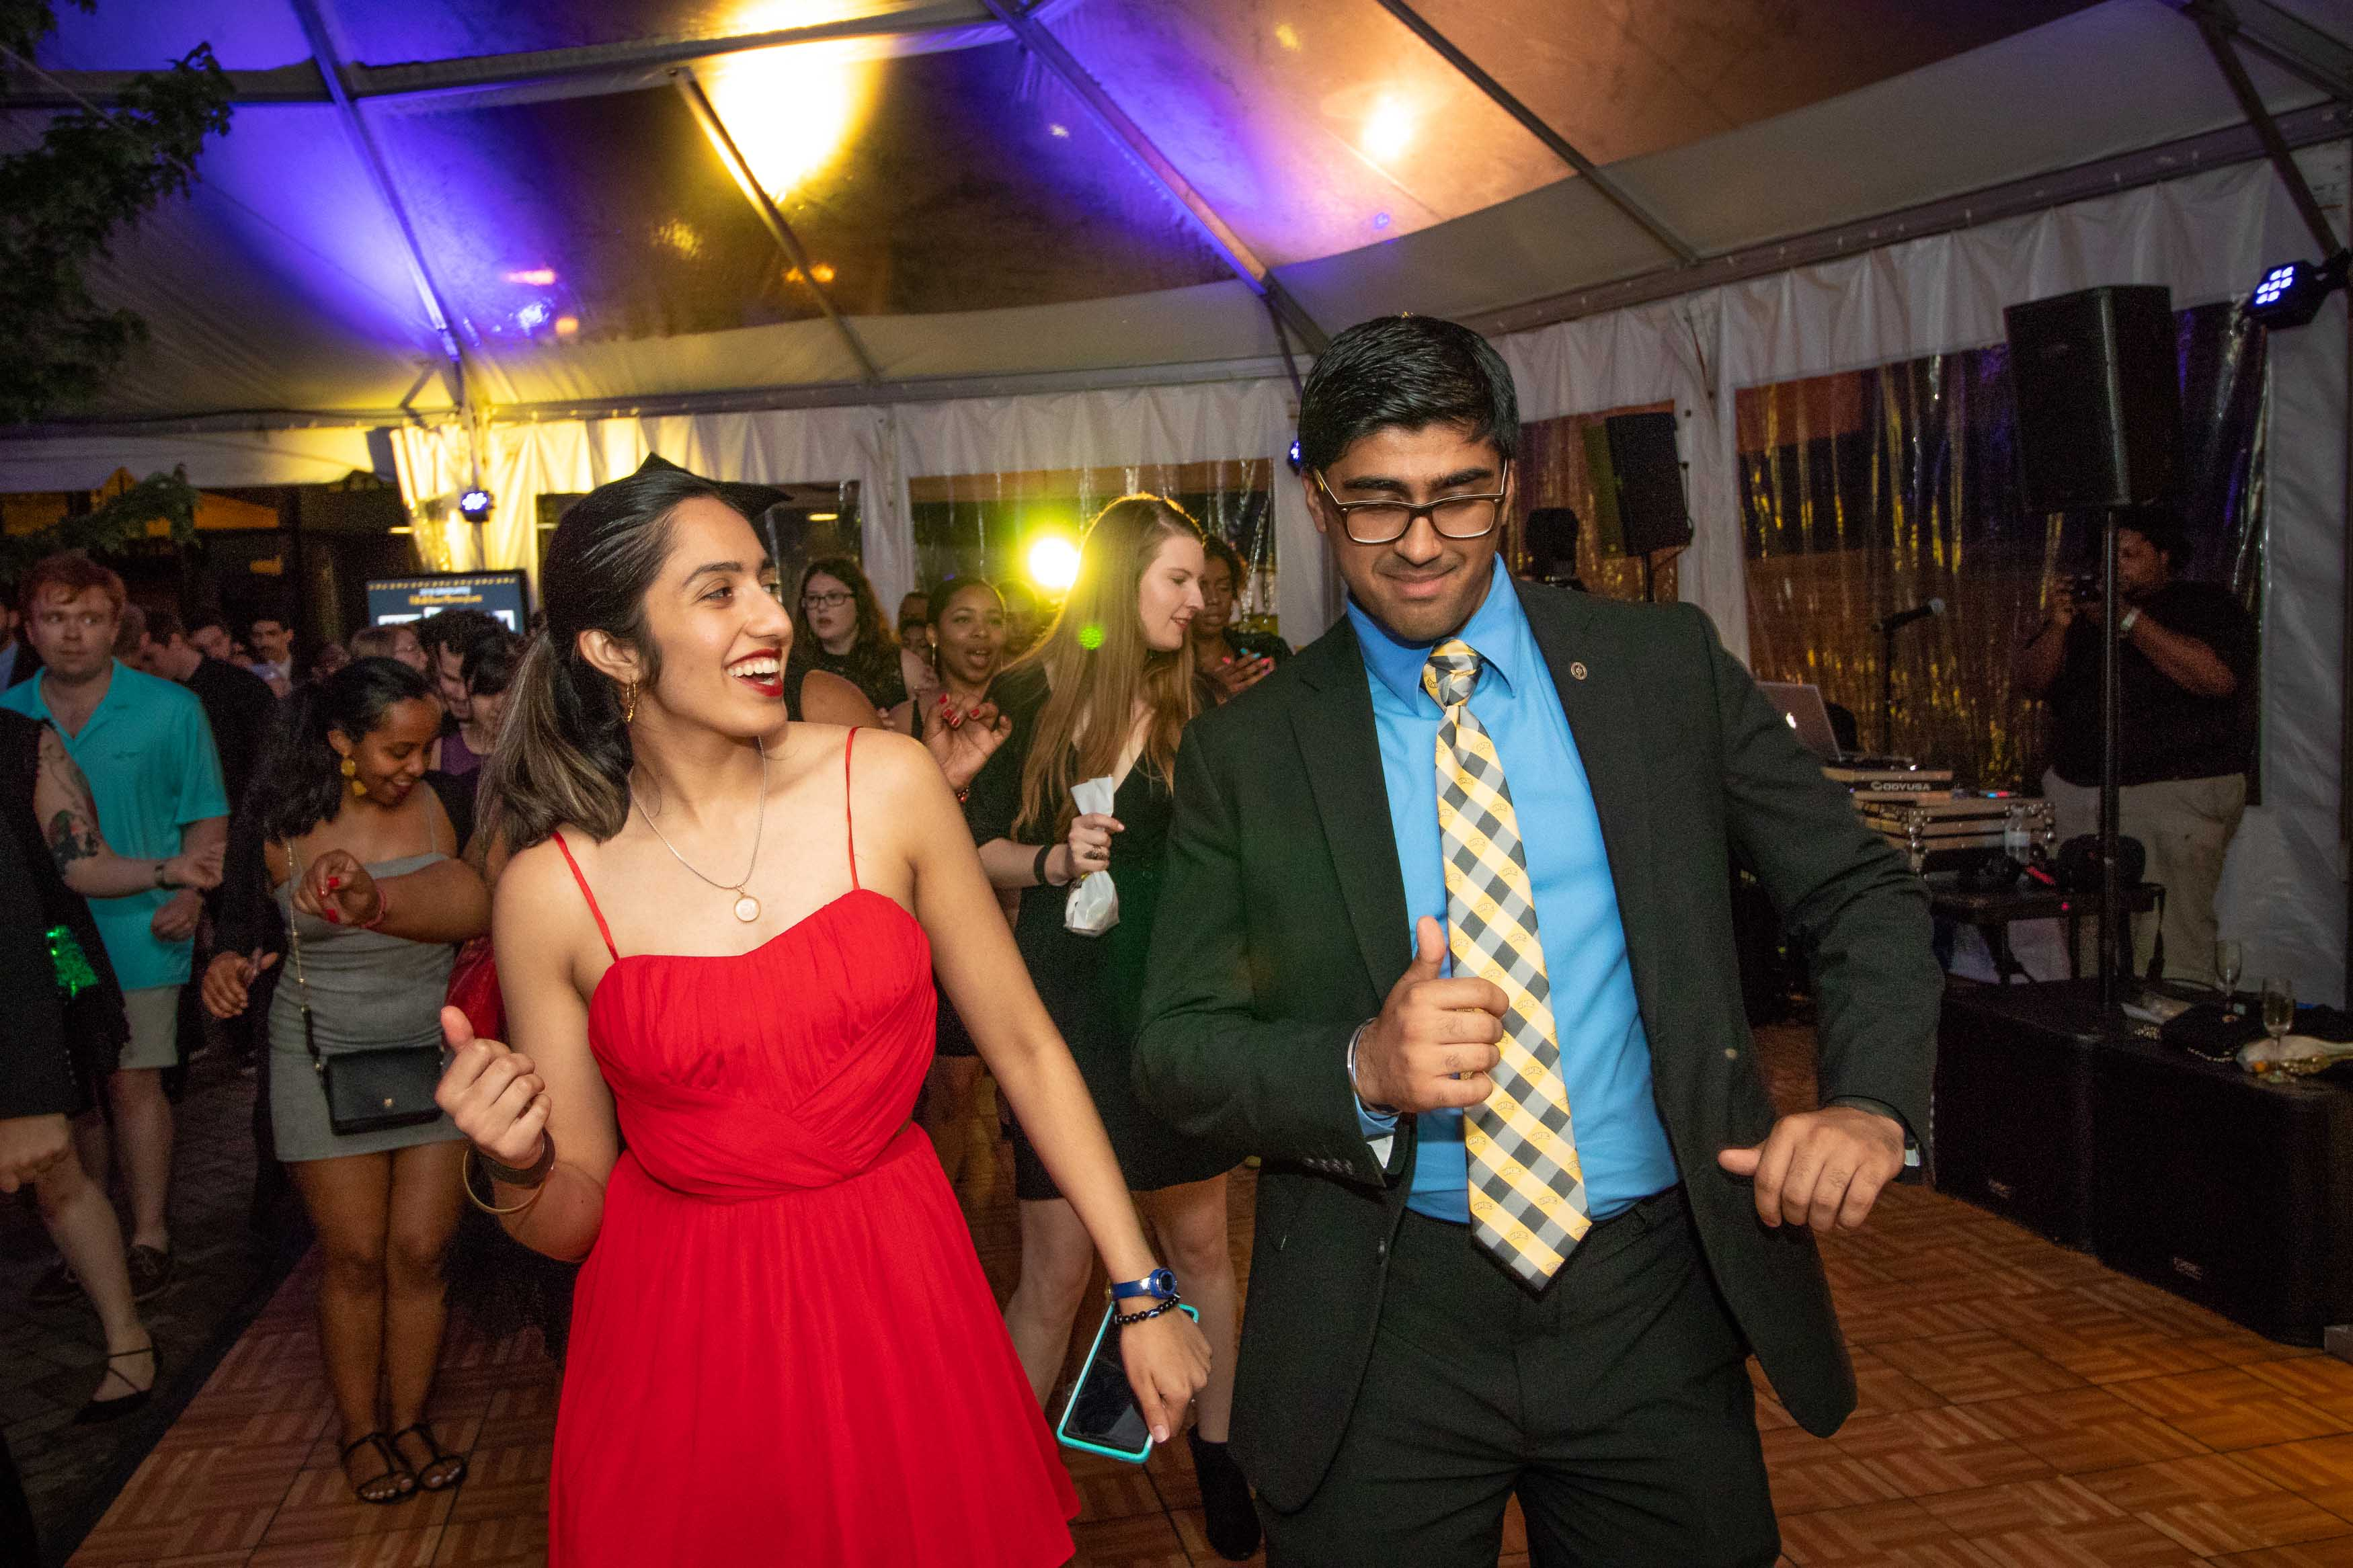 Two people dance together at Grad dance